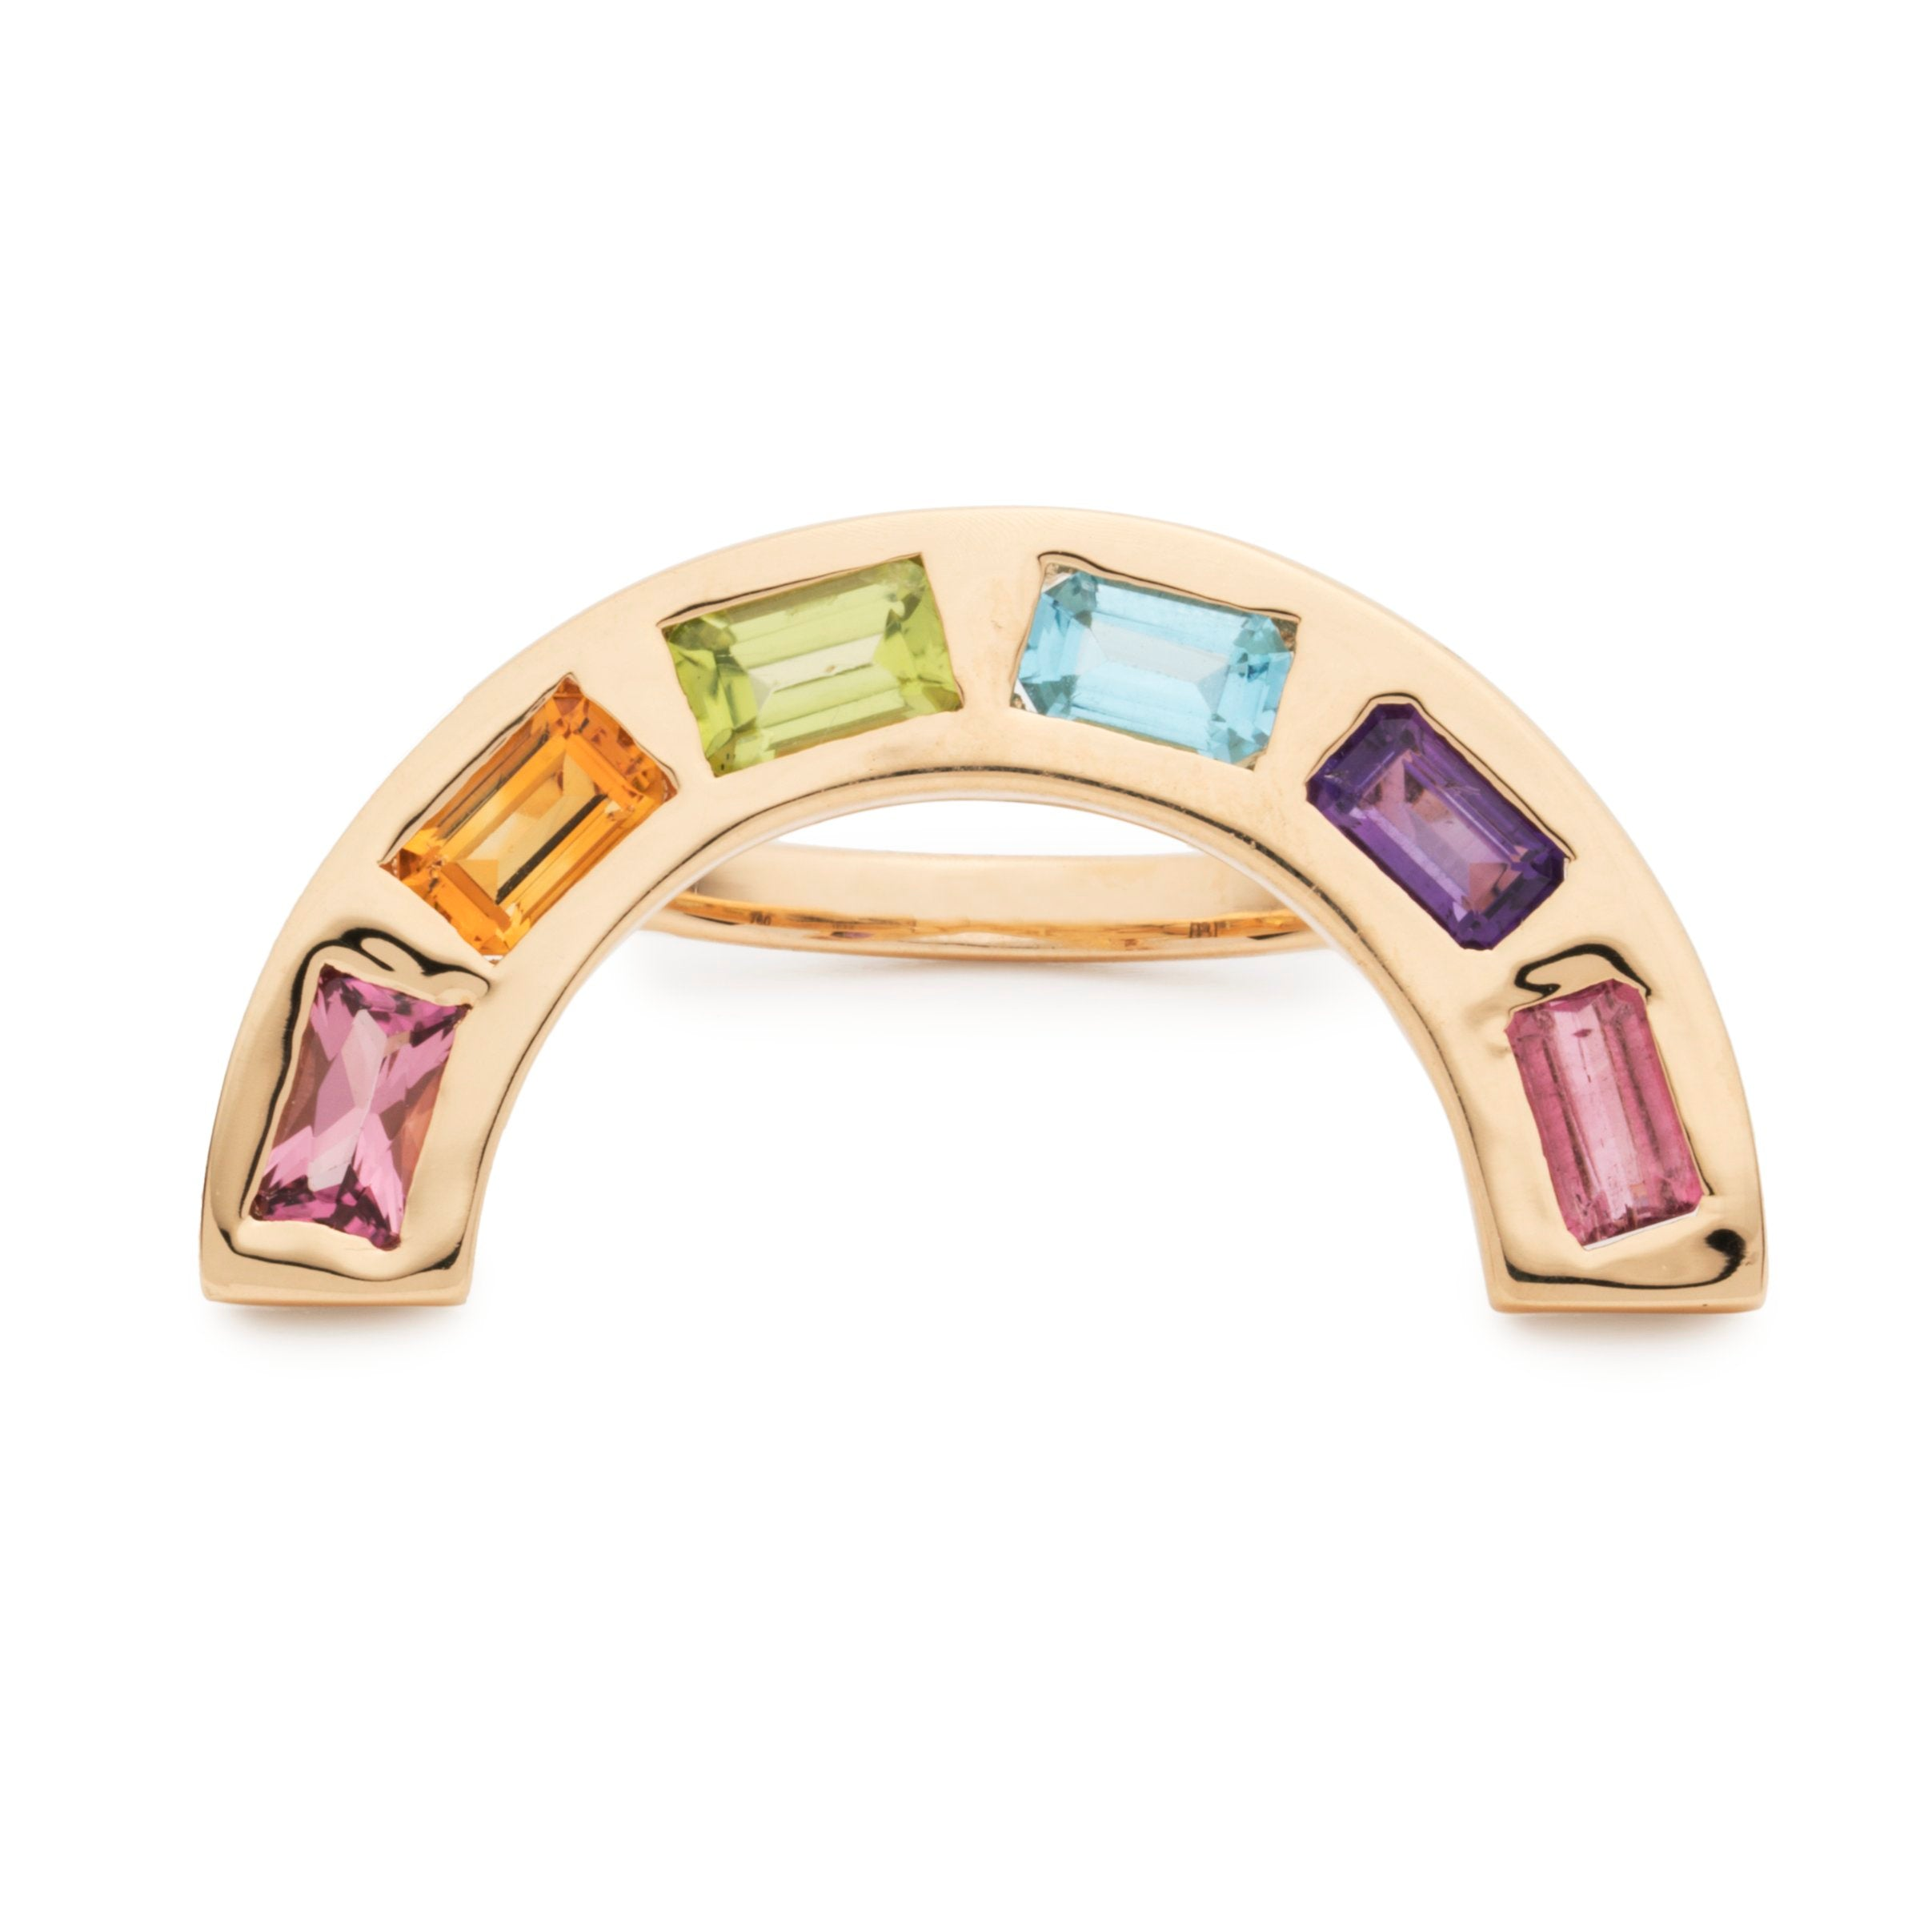 XL Deconstructed Rainbow Ring